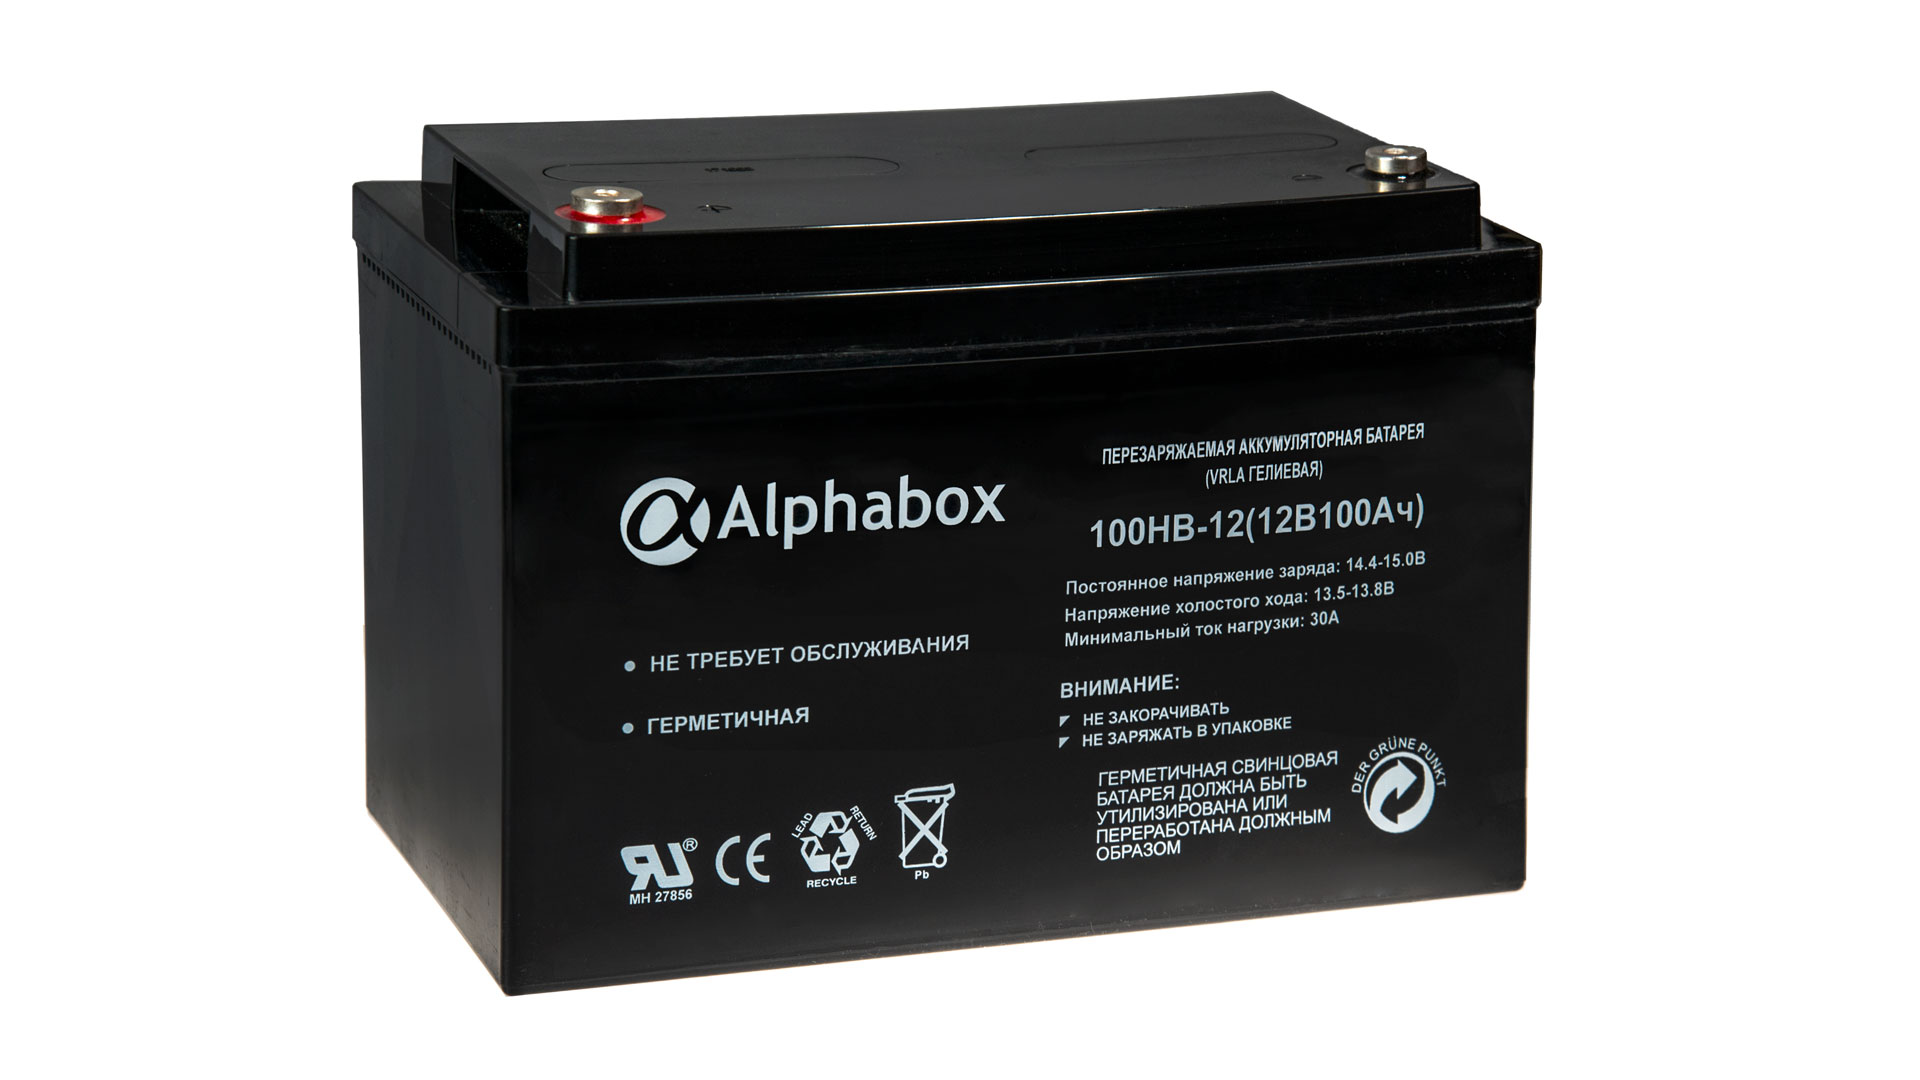 GSLAB Alphabox VRLA Battery 12V/100Ah